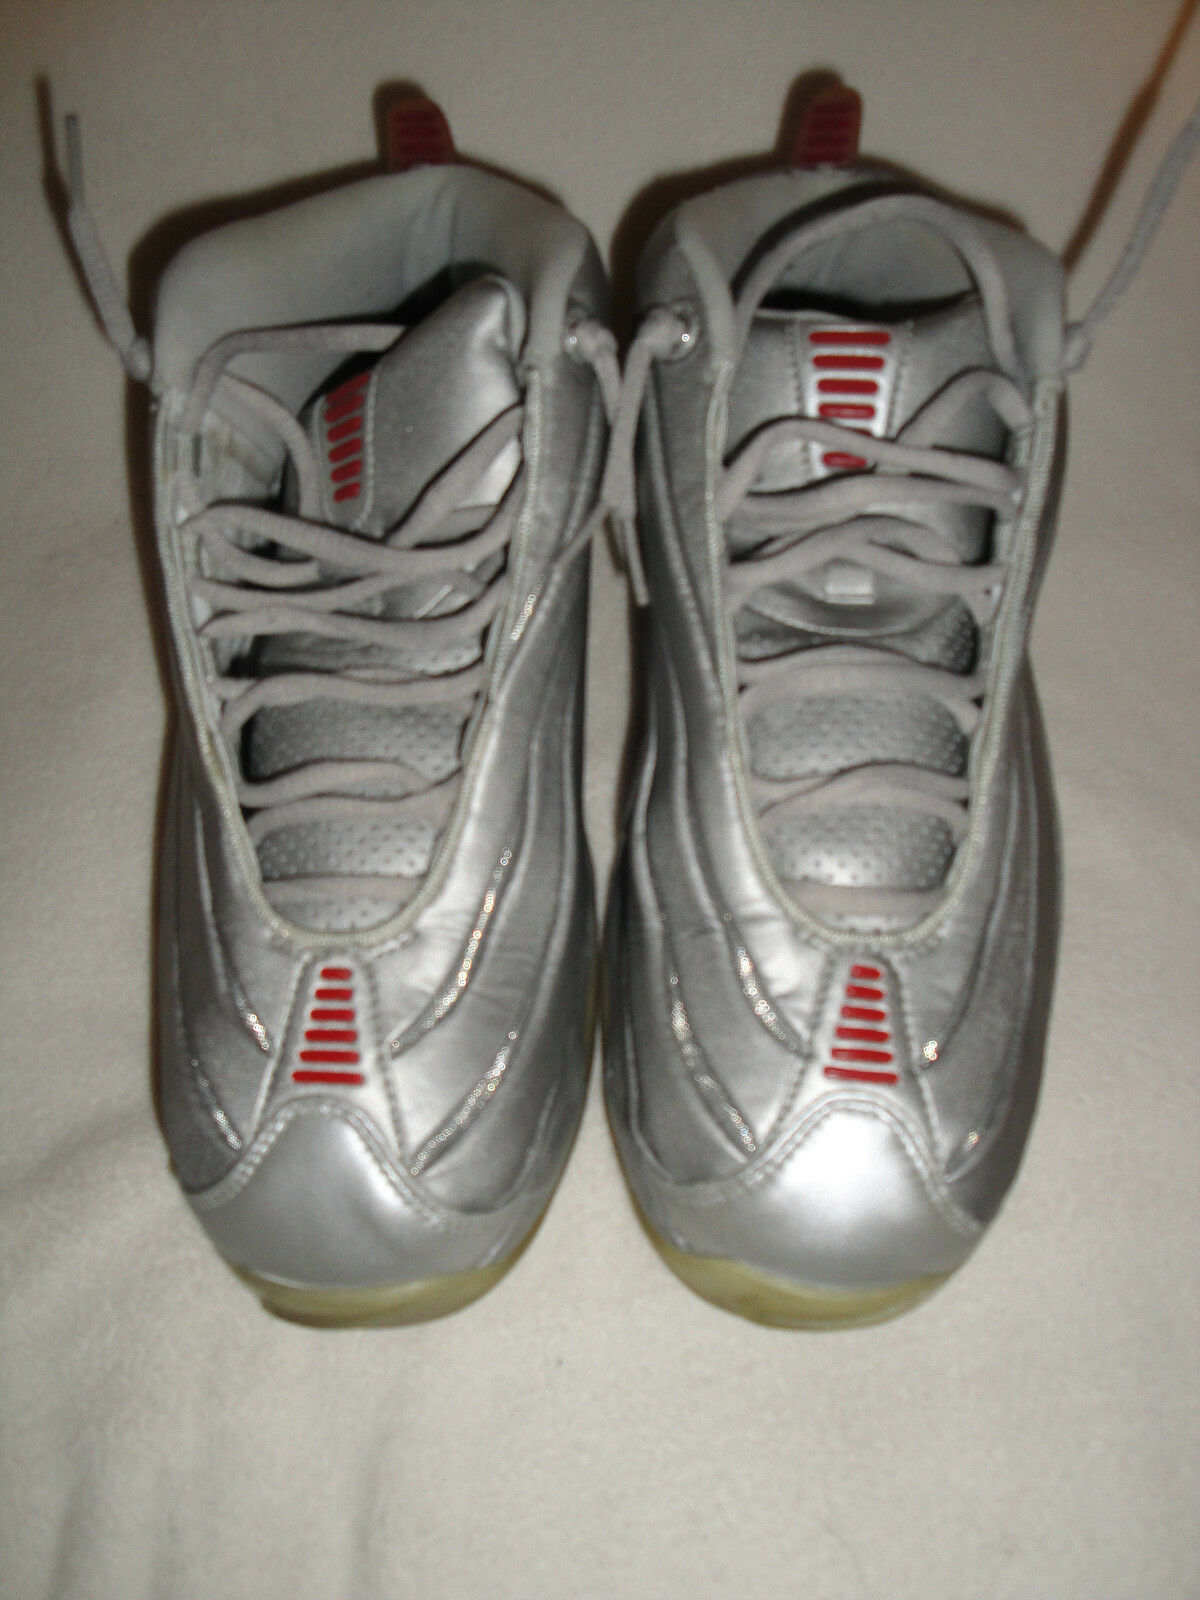 Nike Air Total Max II Size 11.5 Style Metallic Silver / Pro Red